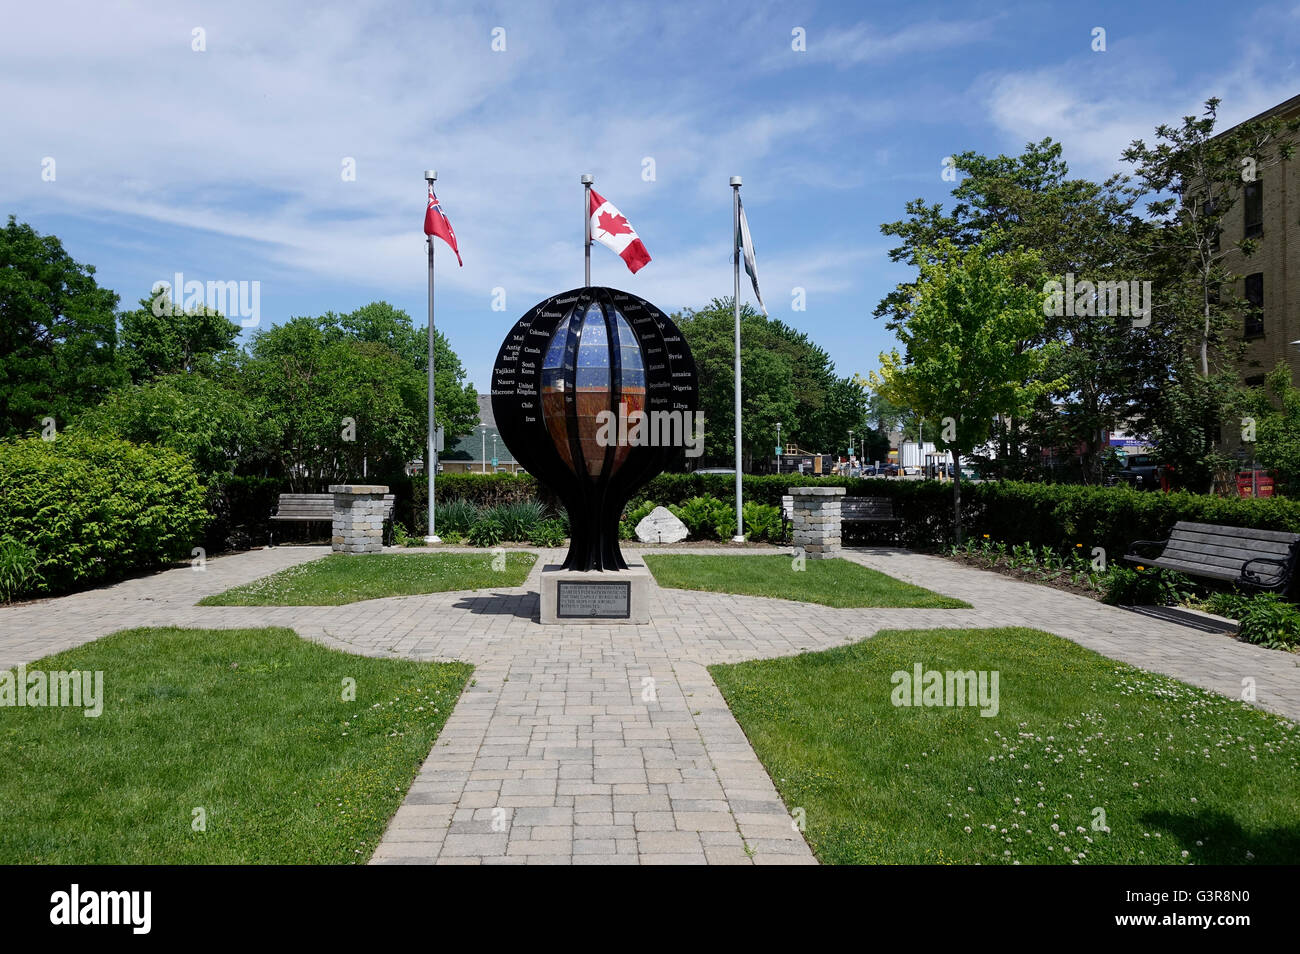 The Time Capsule At Banting House Museum London Ontario, Birthplace Of Insulin And Home Of Dr Banting Stock Photo